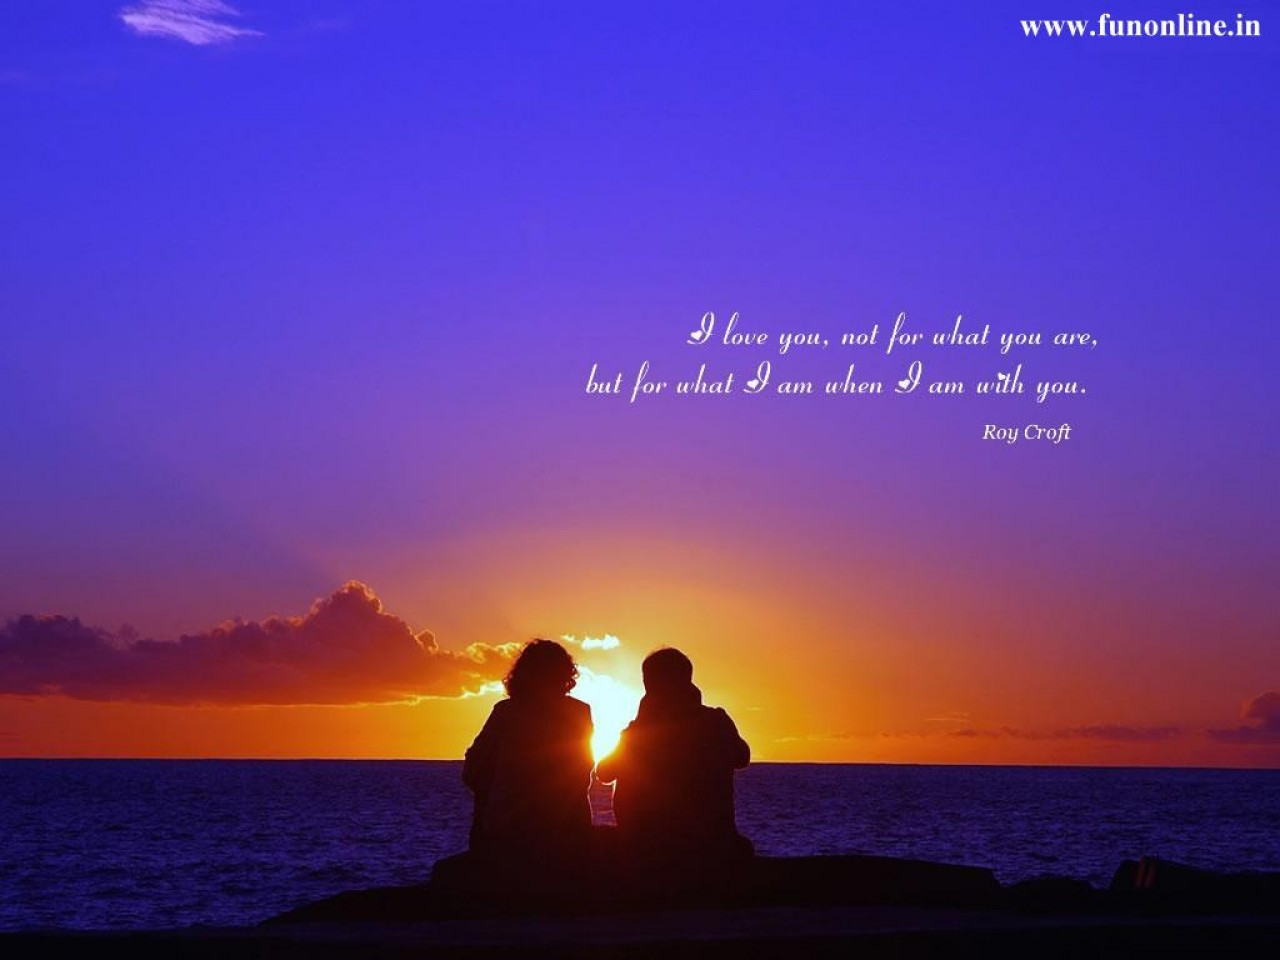 58 Hd Cute Quotes Sayings About Life And Love With Images: Romantic Wallpapers With Quotes